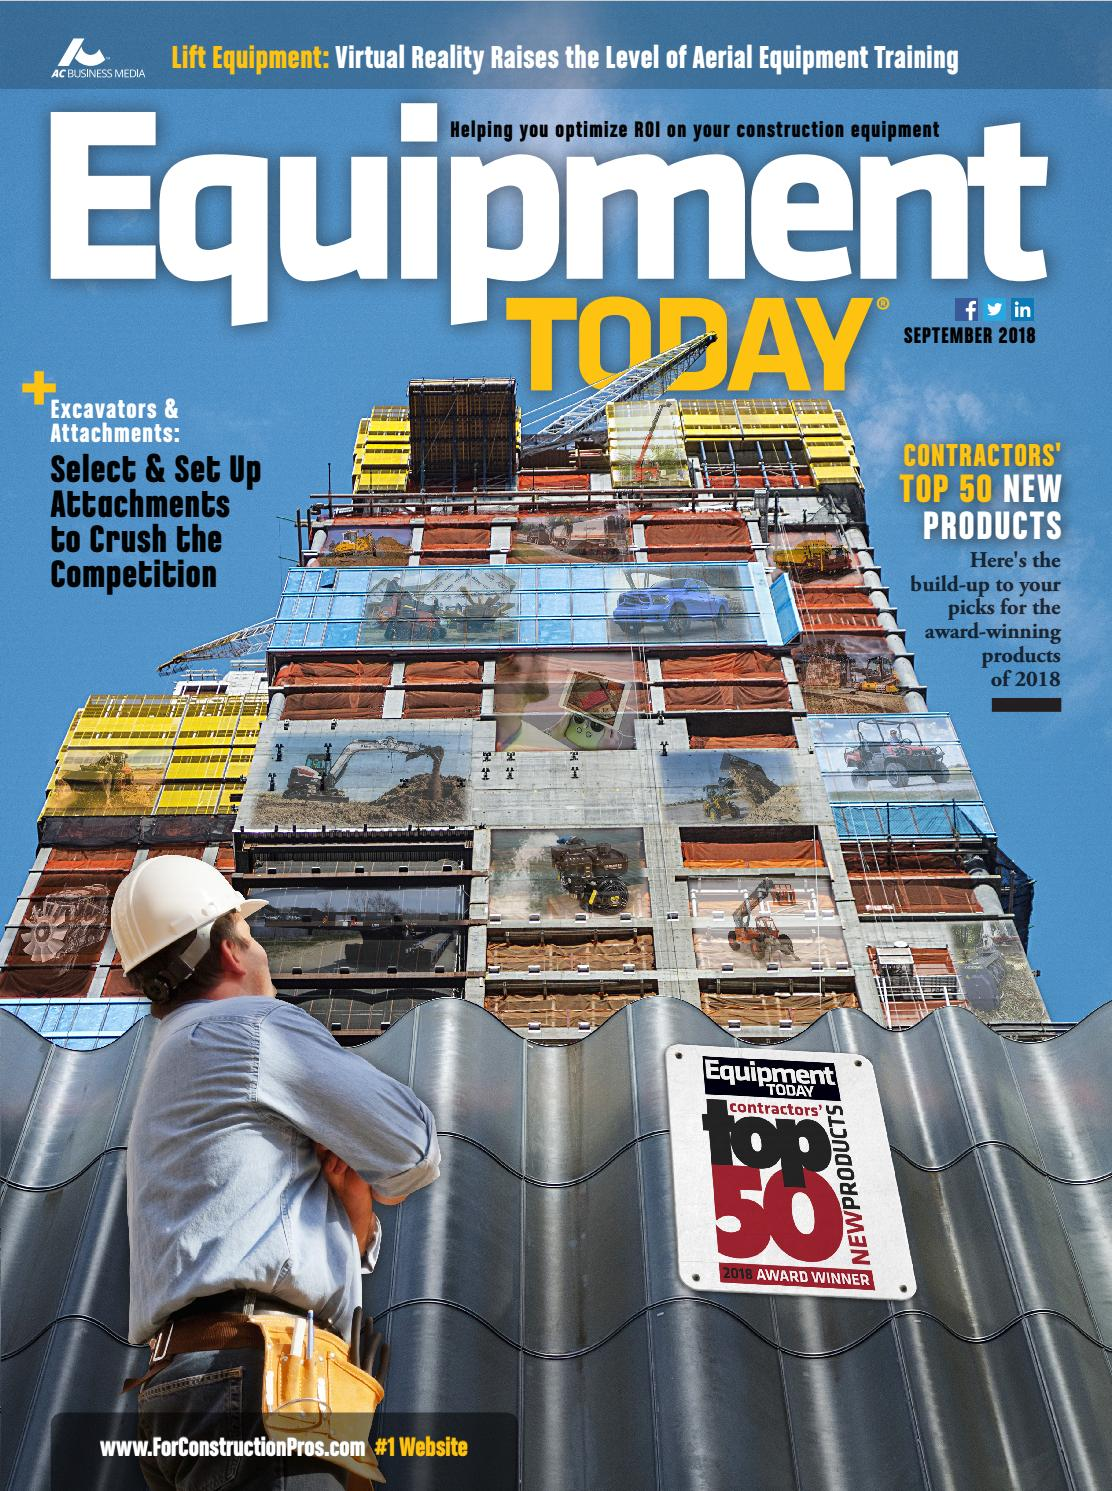 Equipment Today September 2018 by ForConstructionPros com - issuu